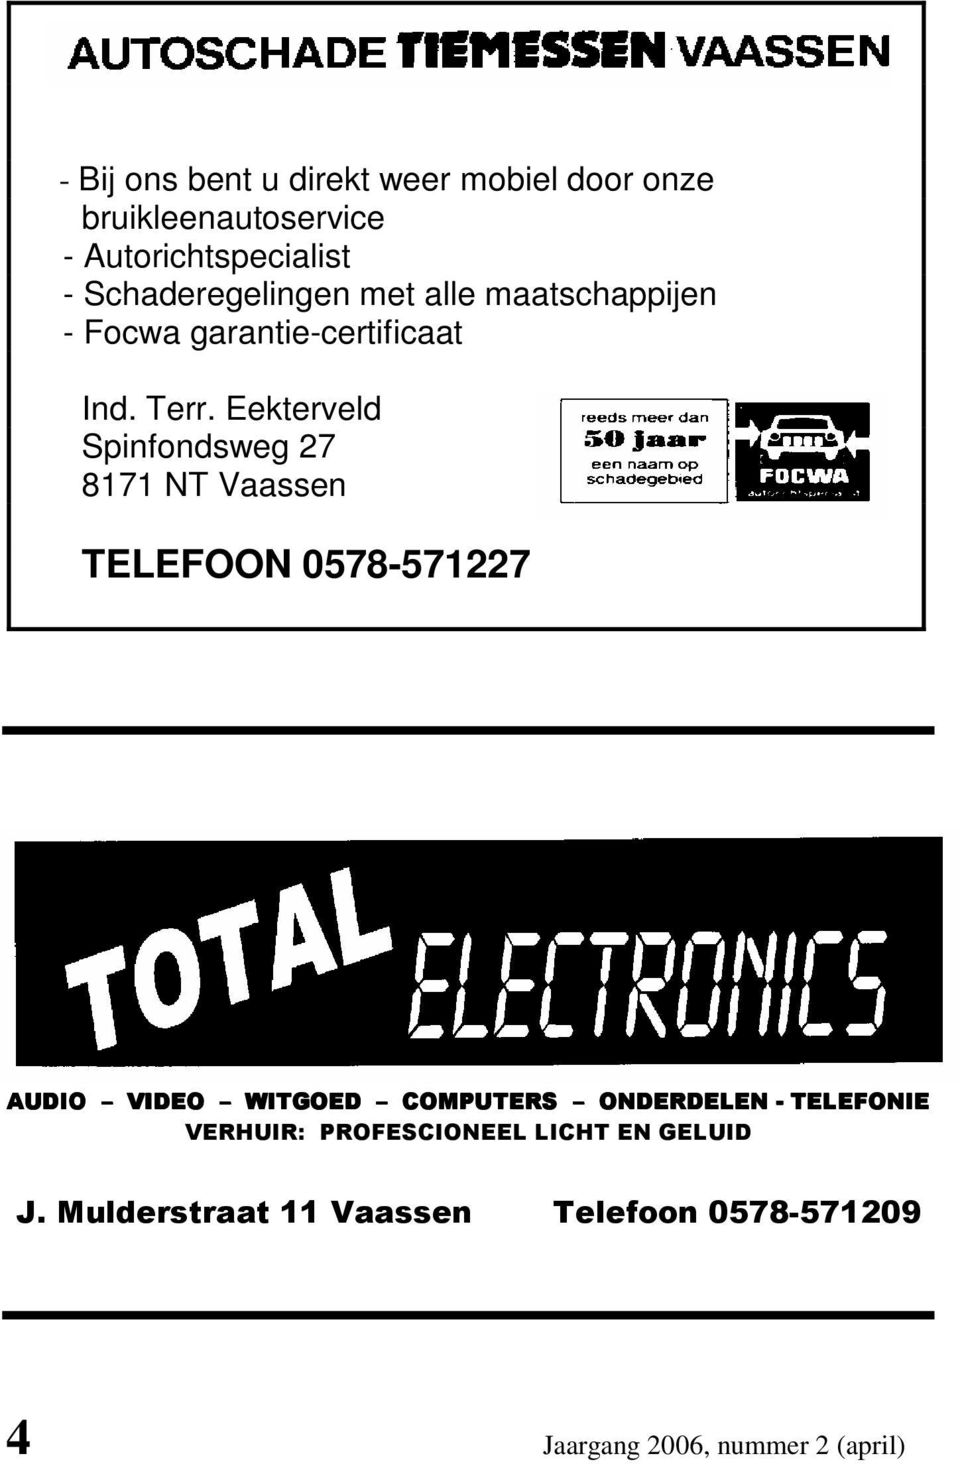 Eekterveld Spinfondsweg 27 8171 NT Vaassen TELEFOON 0578-571227 AUDIO VIDEO WITGOED COMPUTERS